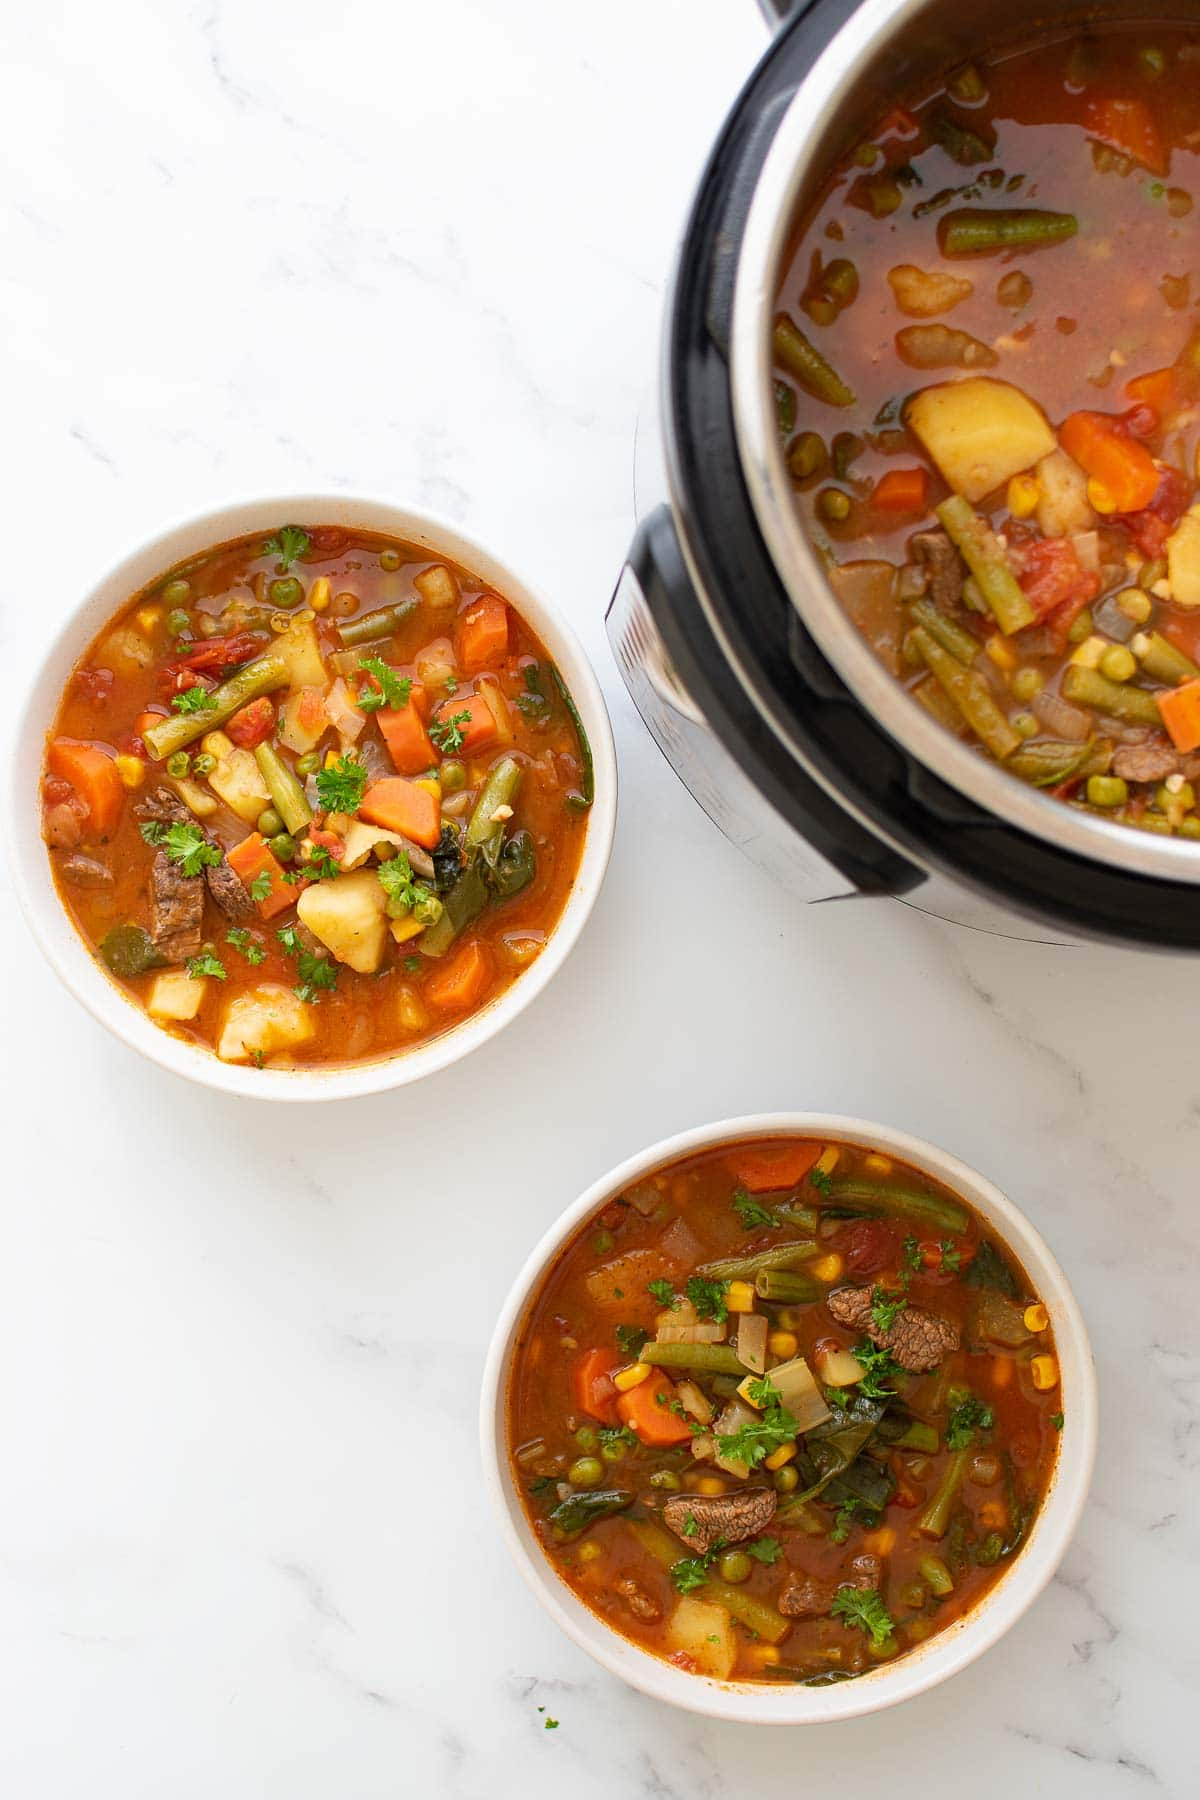 Two bowls of Instant Pot beef soup with vegetables.